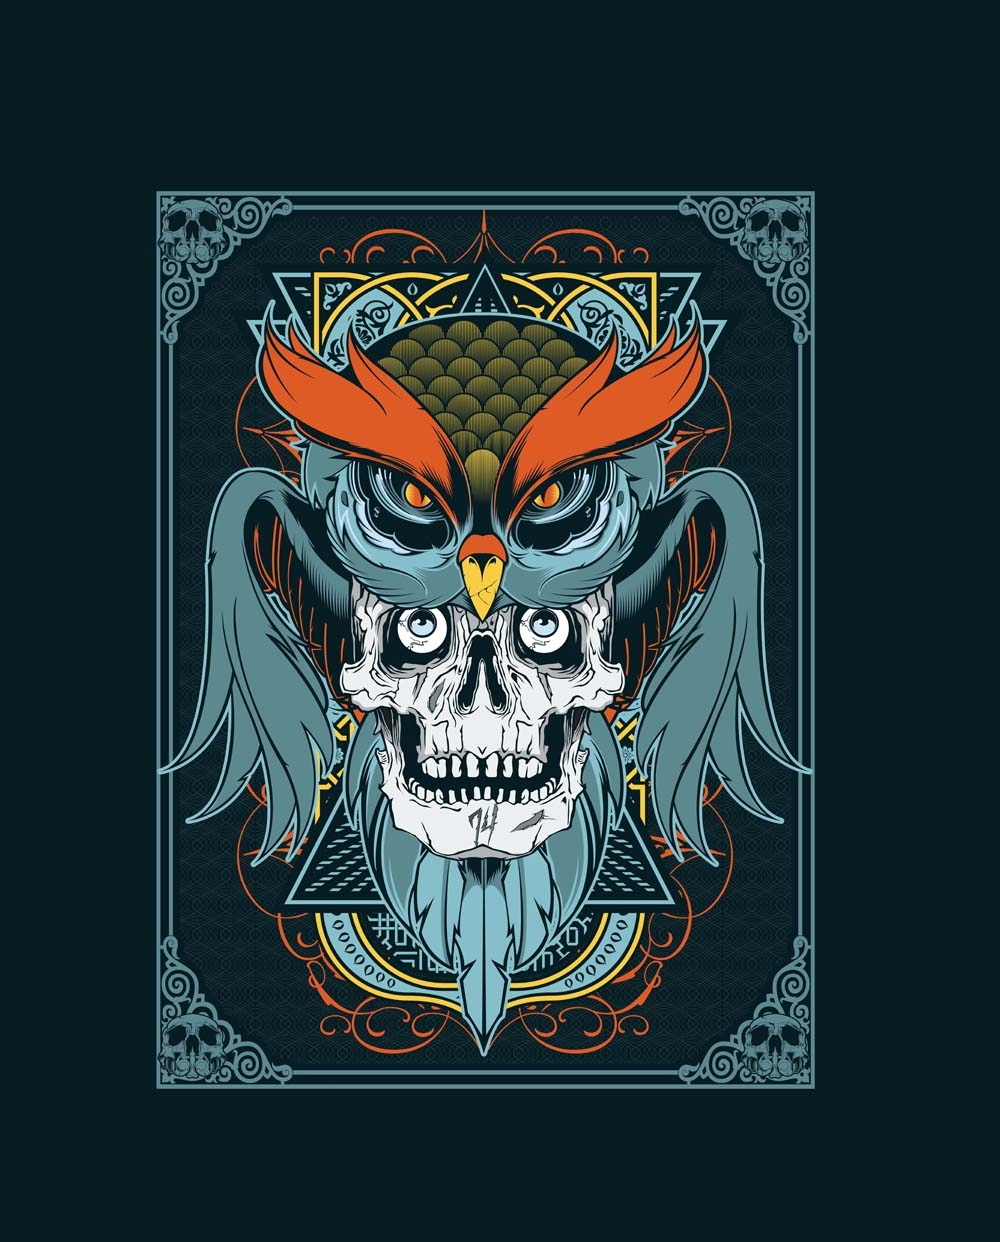 7b900947 Adobe Illustrator & Photoshop tutorial: T-shirt design in Illustrator using  owl and skull vector art